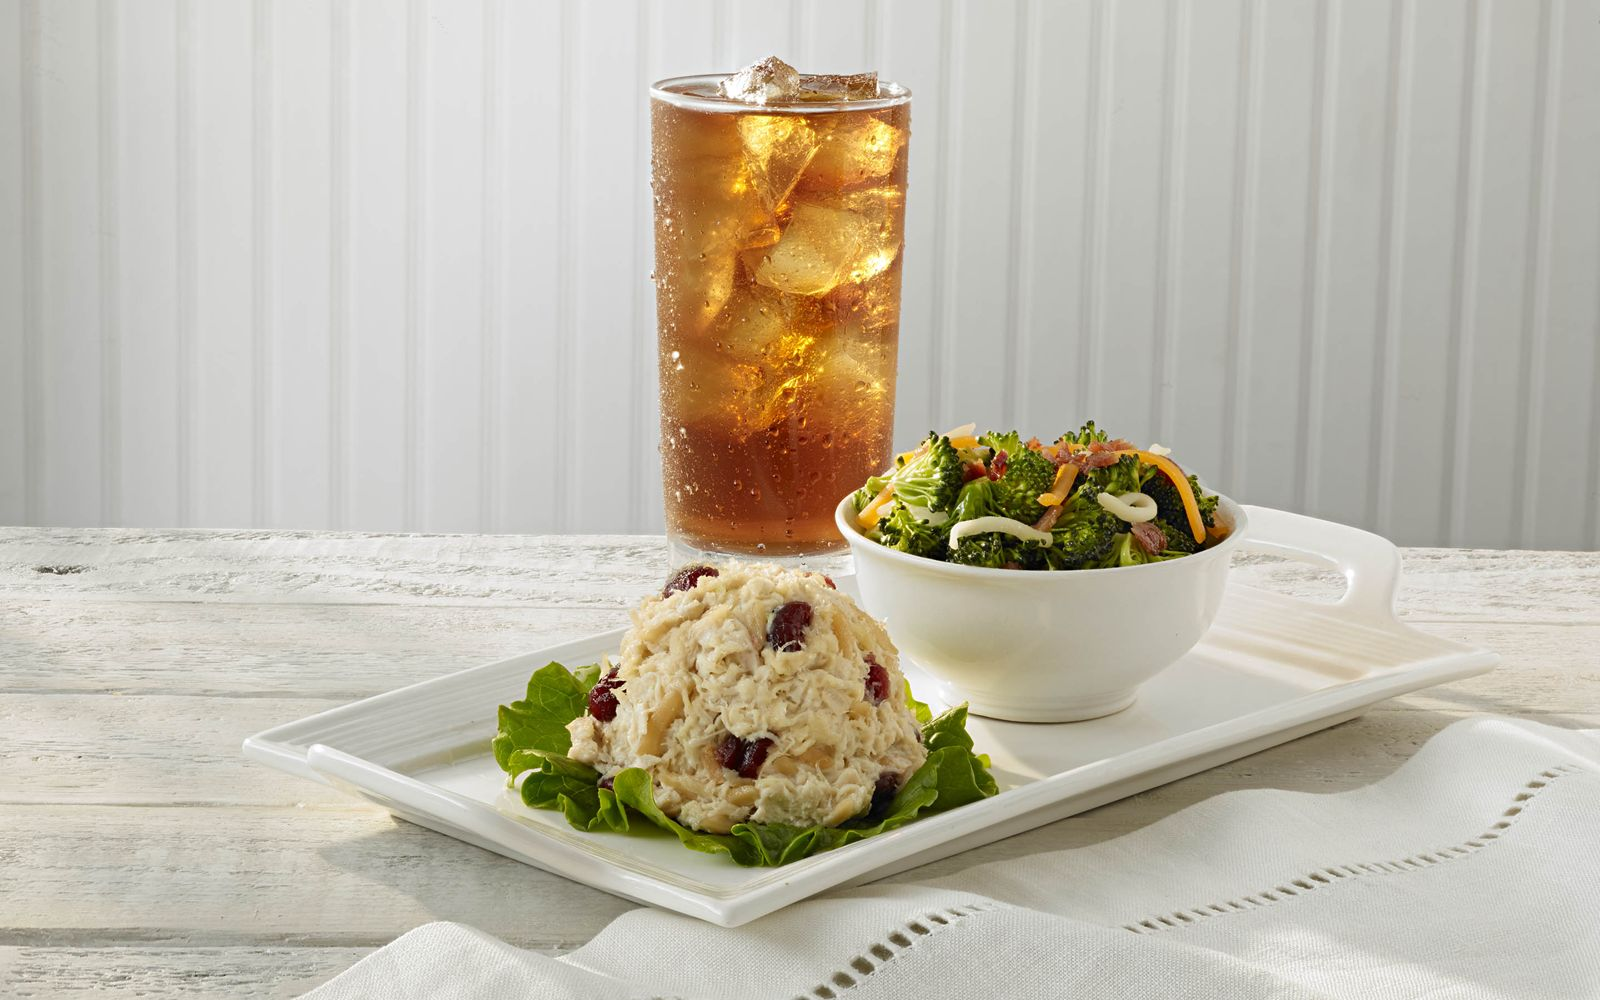 Chicken Salad Chick Expands Presence In Alabama With Opening Of Gadsden Restaurant